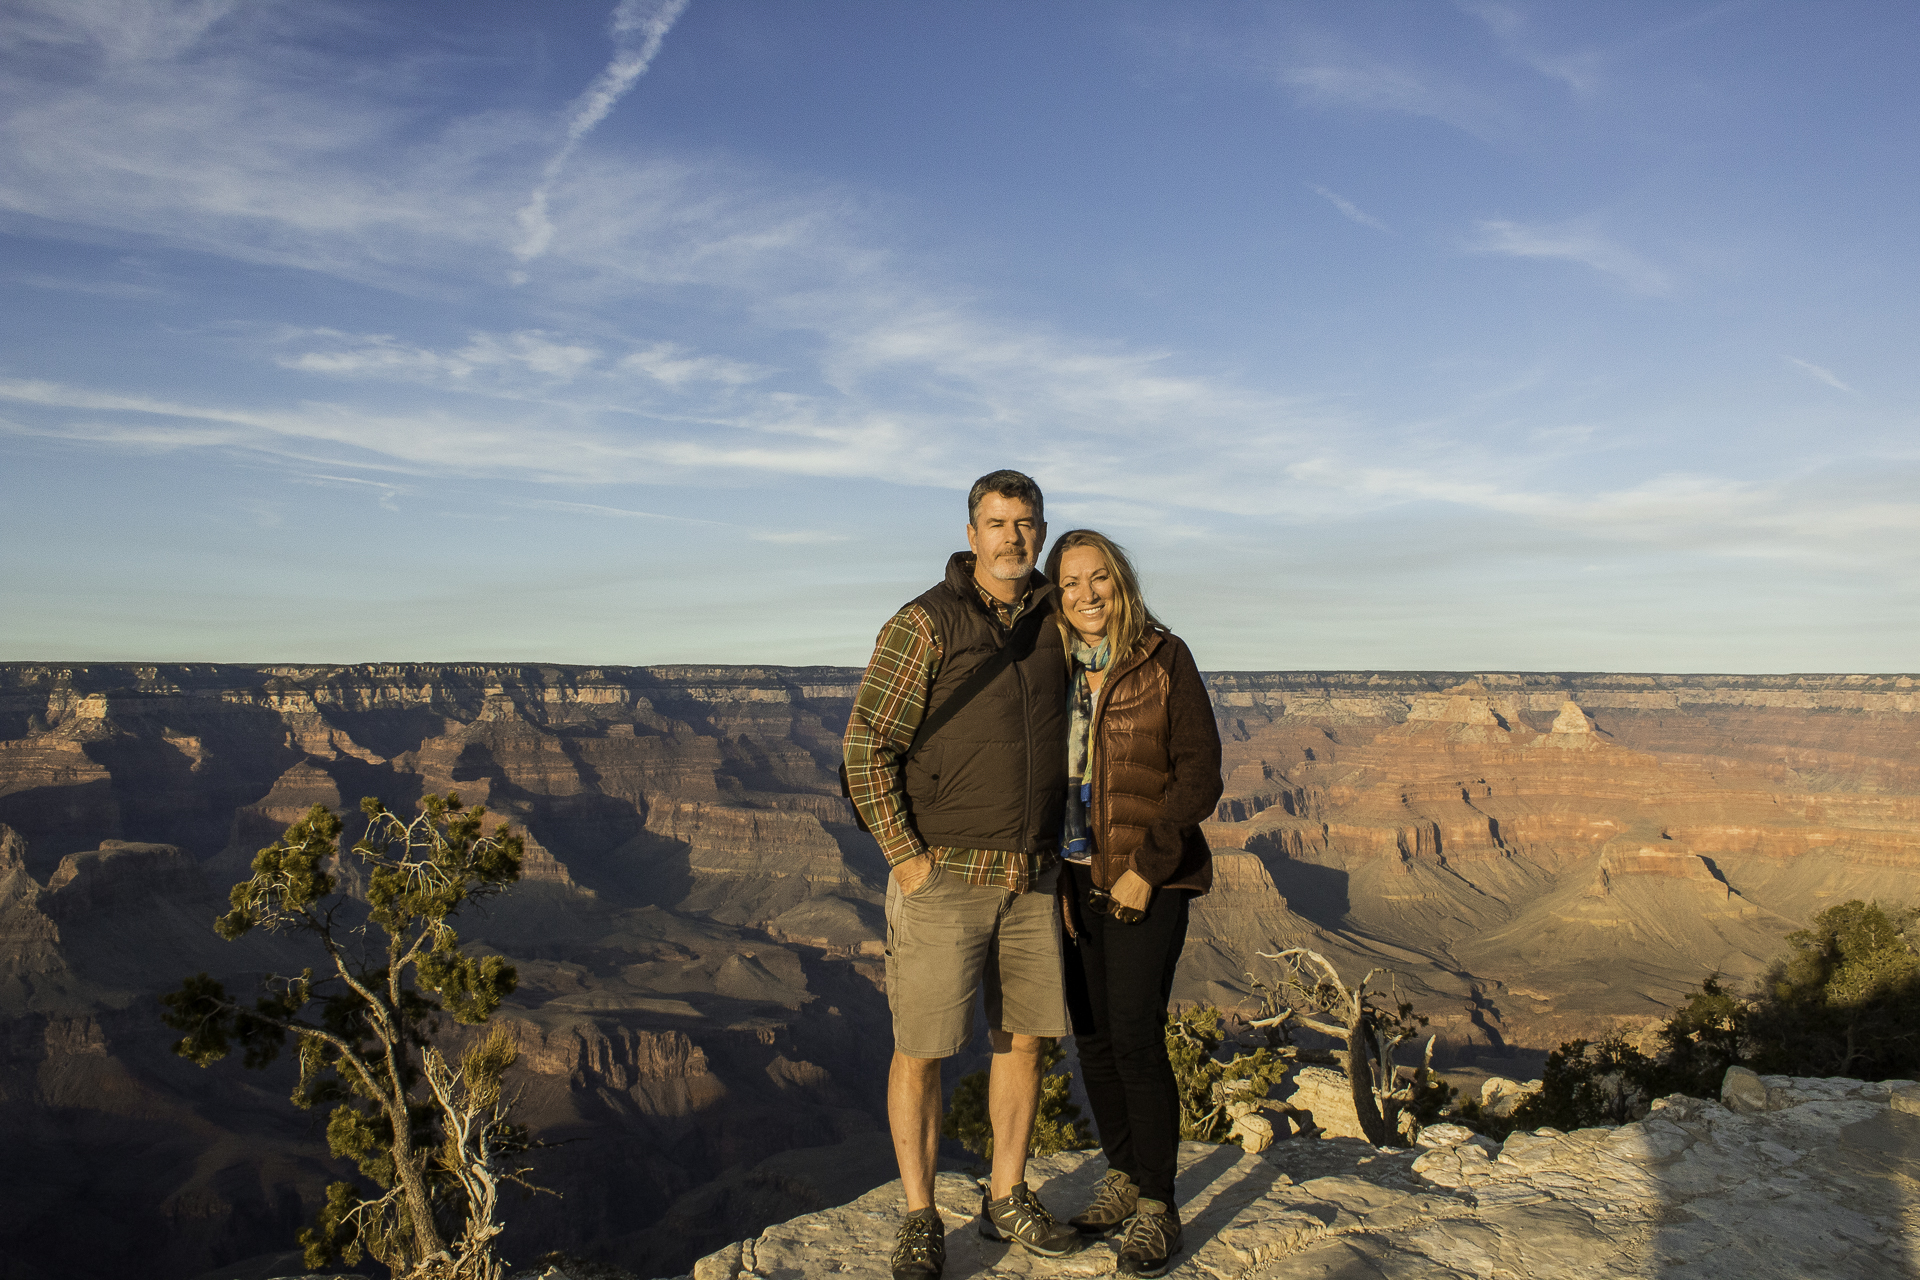 Hiking Arizona – a trip to the Grand Canyon, Sedona and Lake Havasu